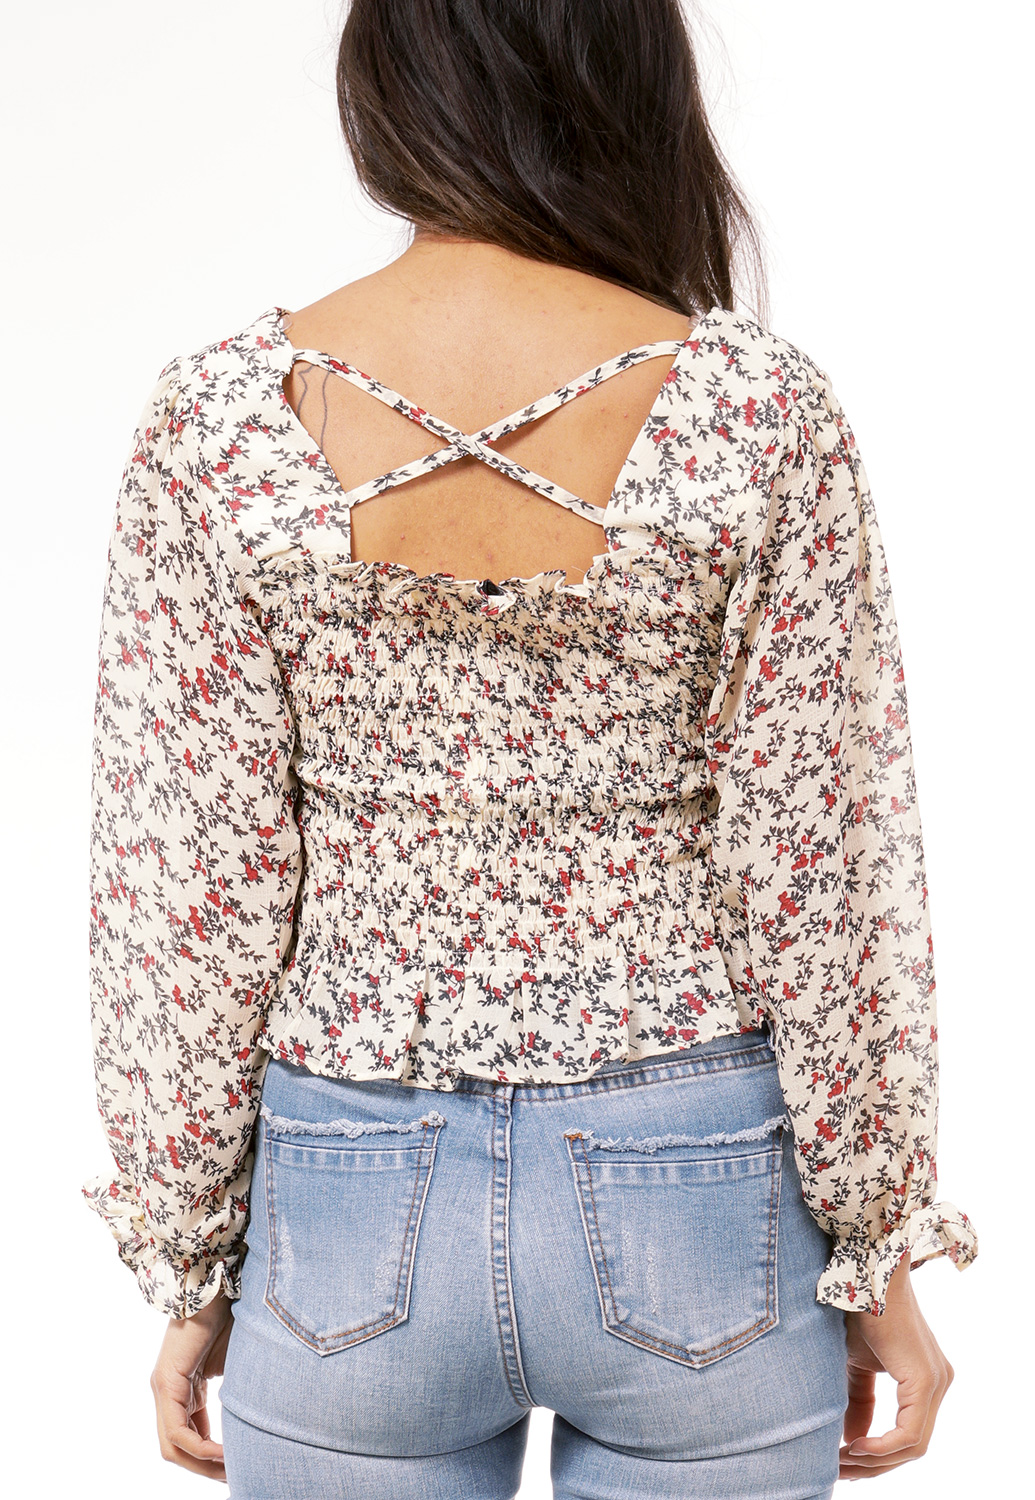 Flower Pattern Smocked Ruffle Top